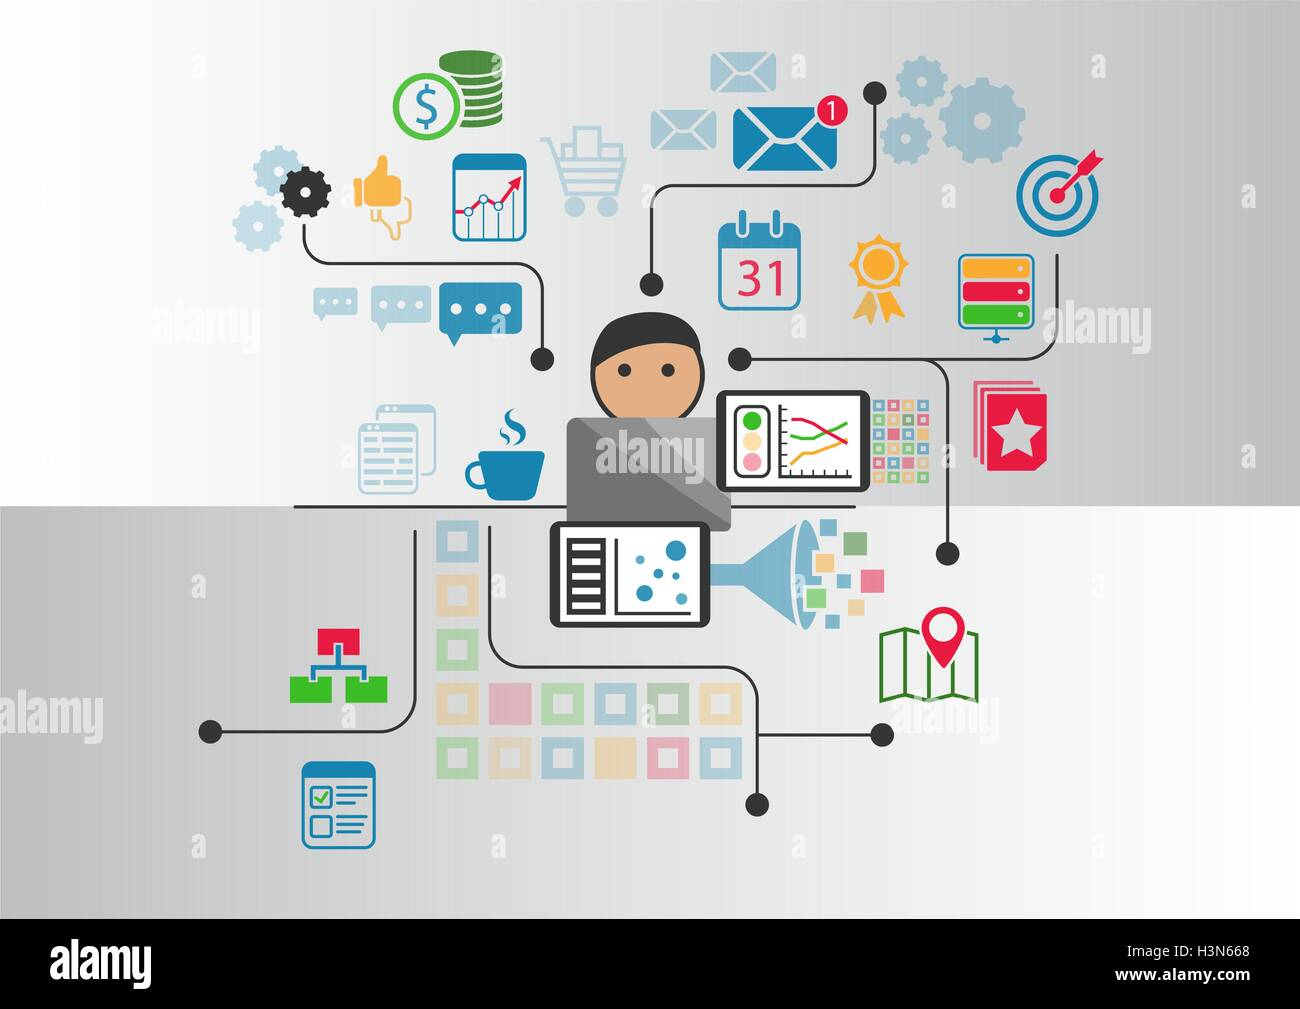 Big data, analytics and business intelligence concept. Cartoon person connected to data and information retrieved - Stock Image